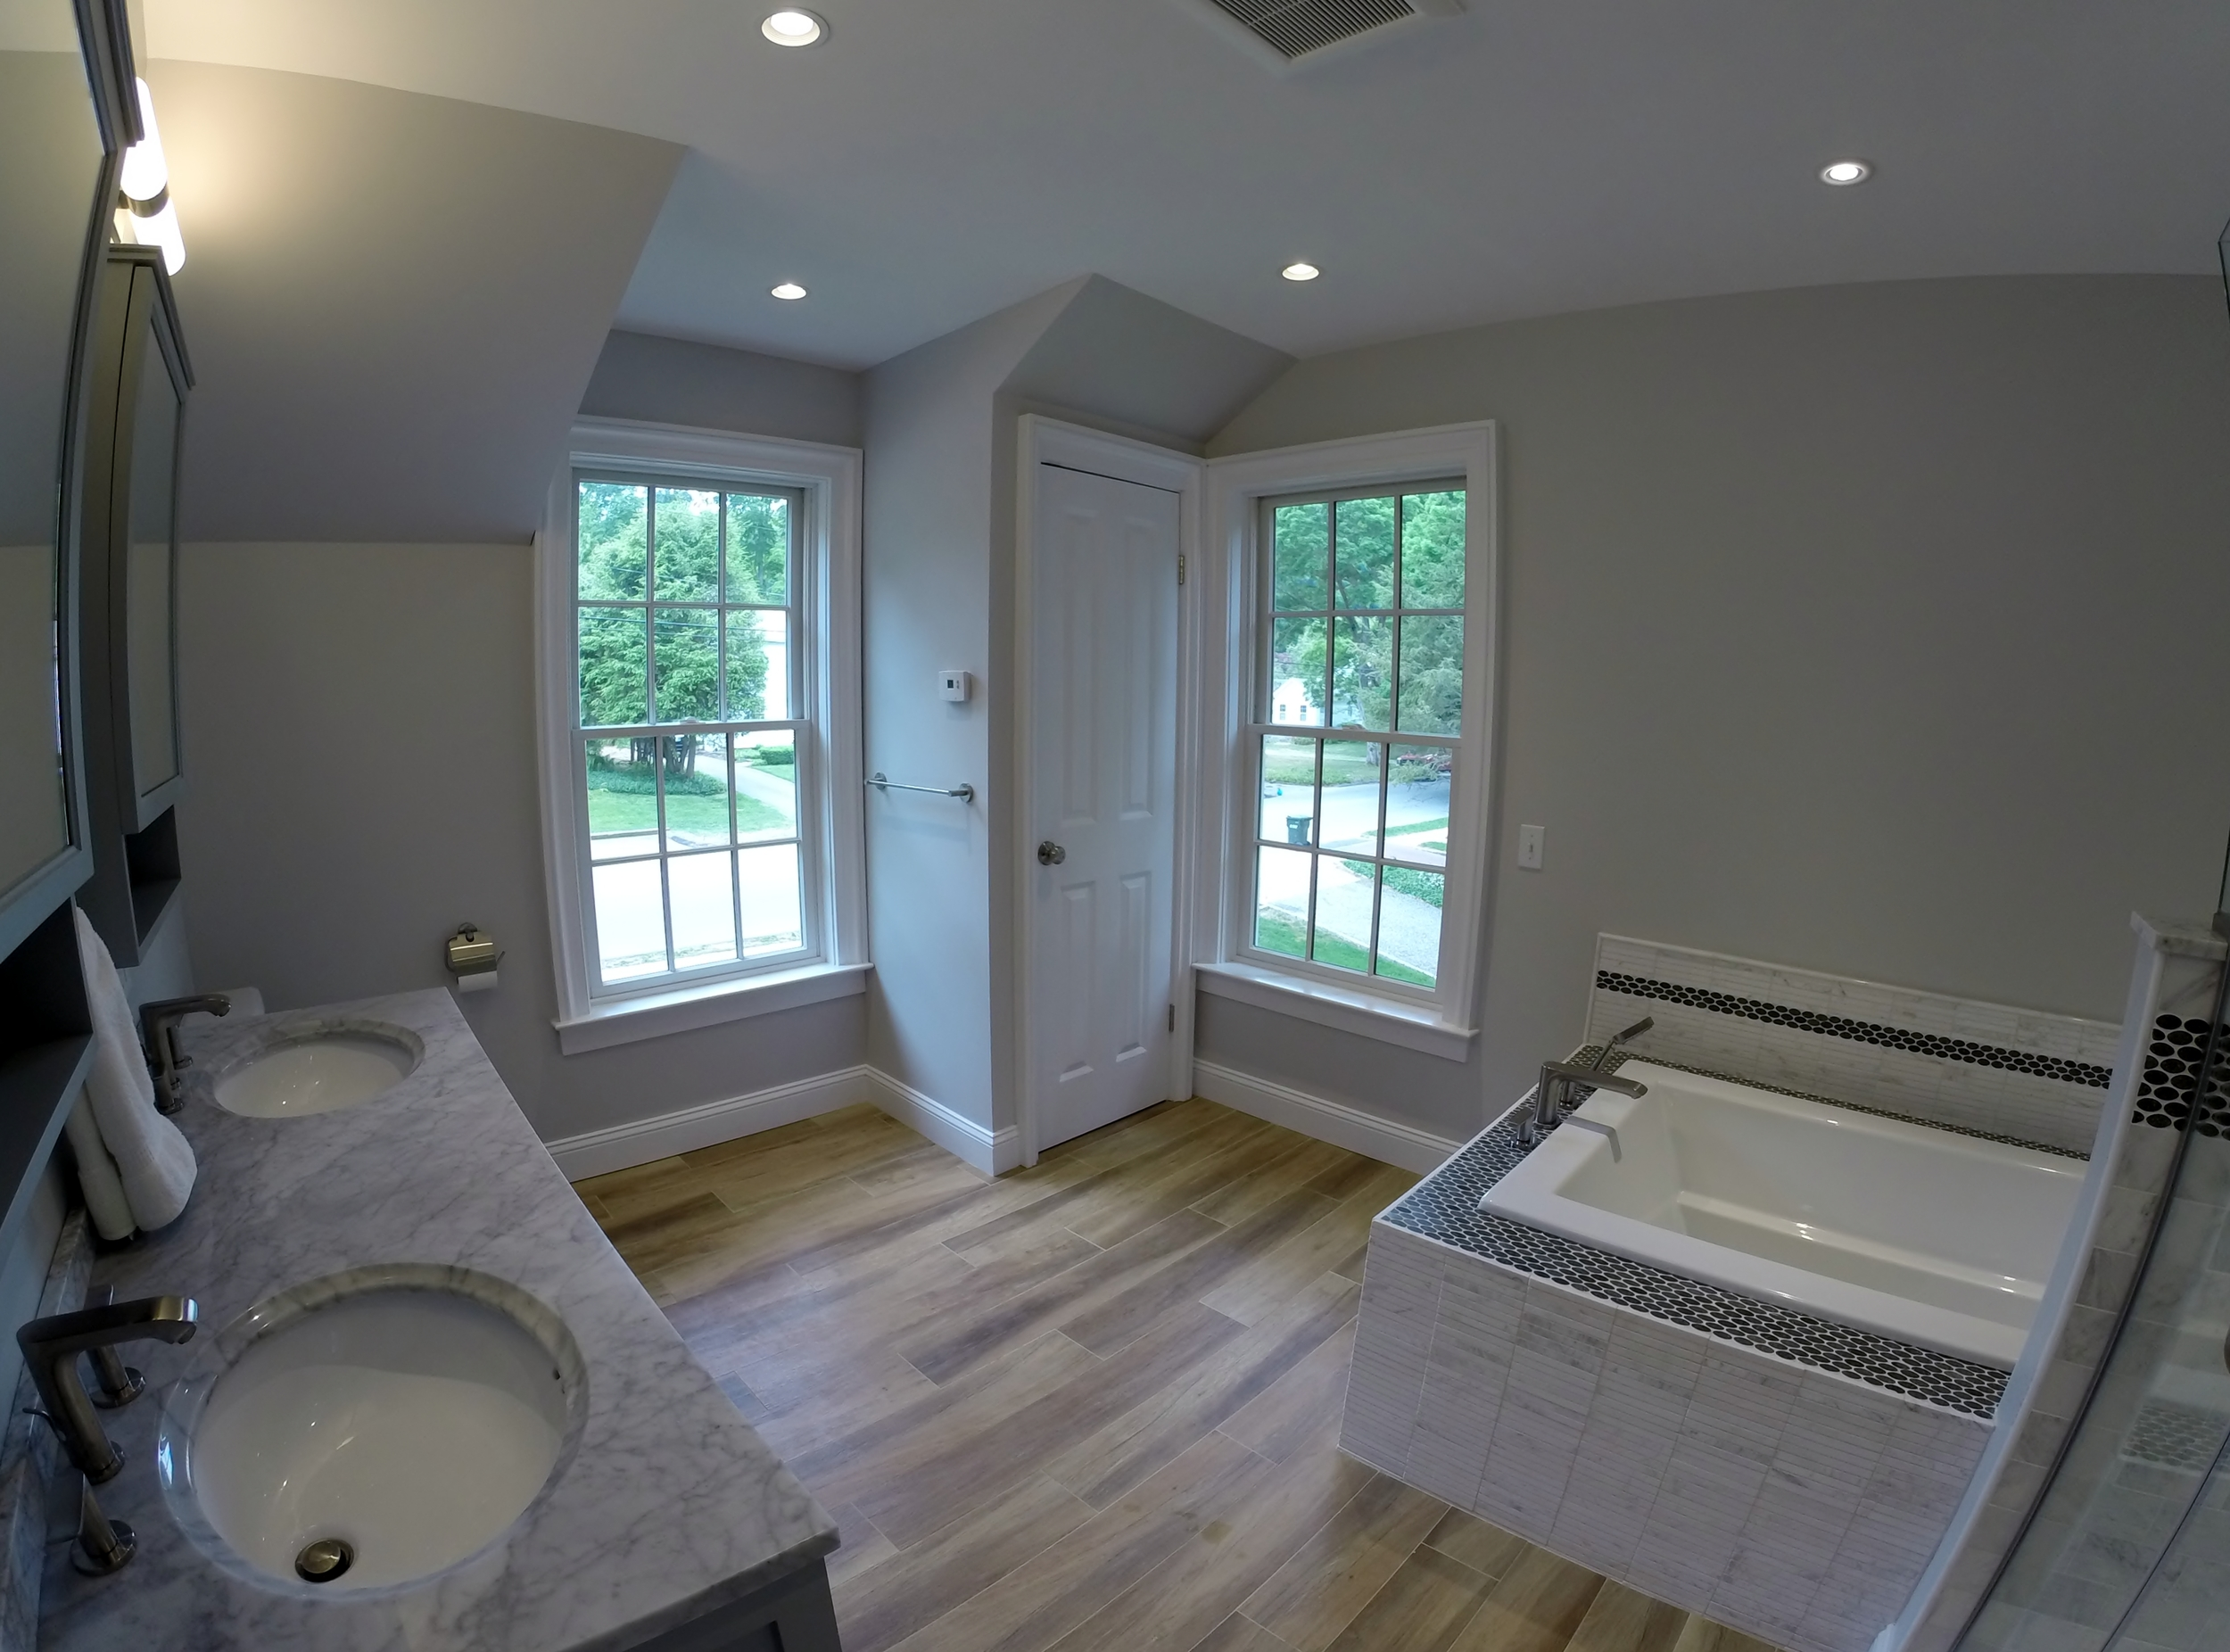 Master Bathroom Design and Remodel in Essex CT | Shaw Remodeling